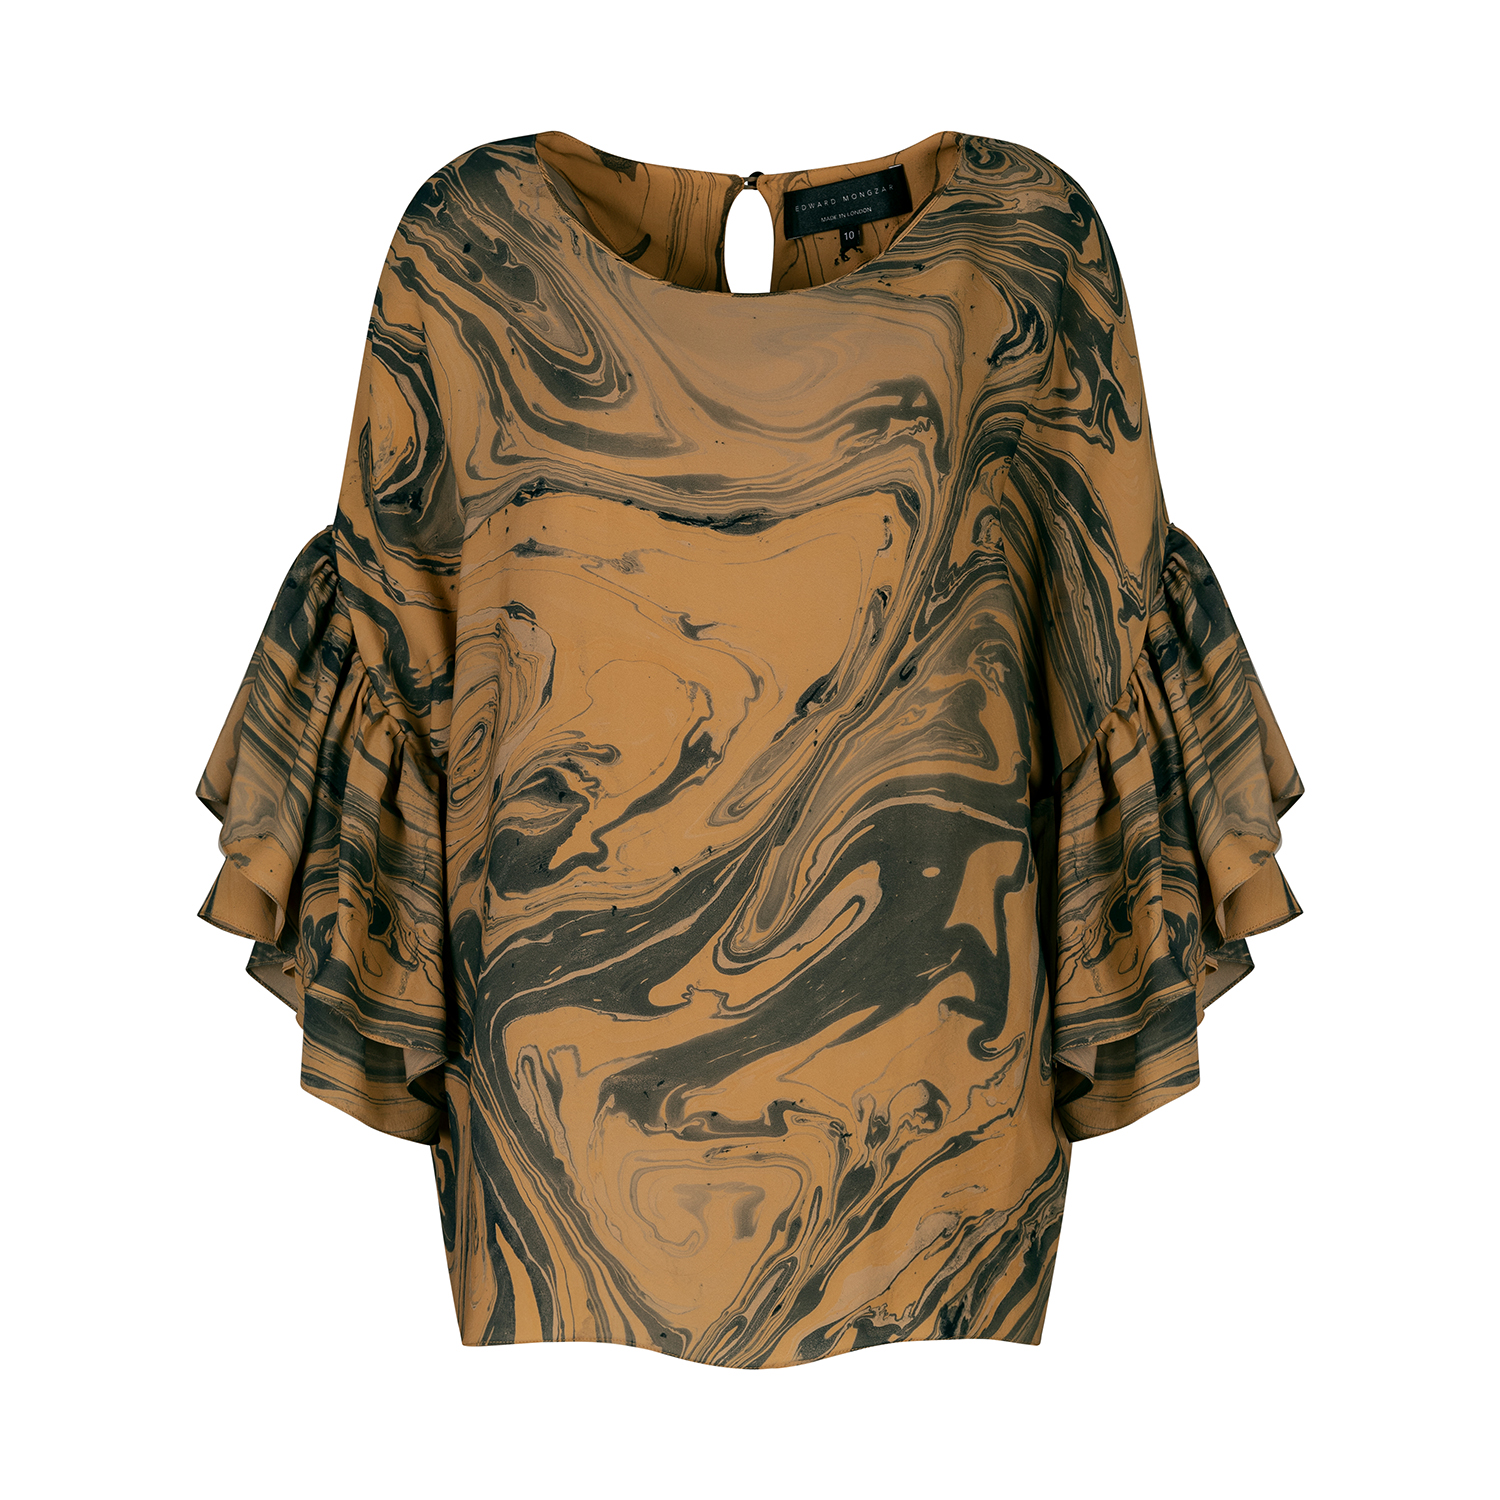 Marbled Ruffle Top by Edward Mongzar on curated-crowd.com